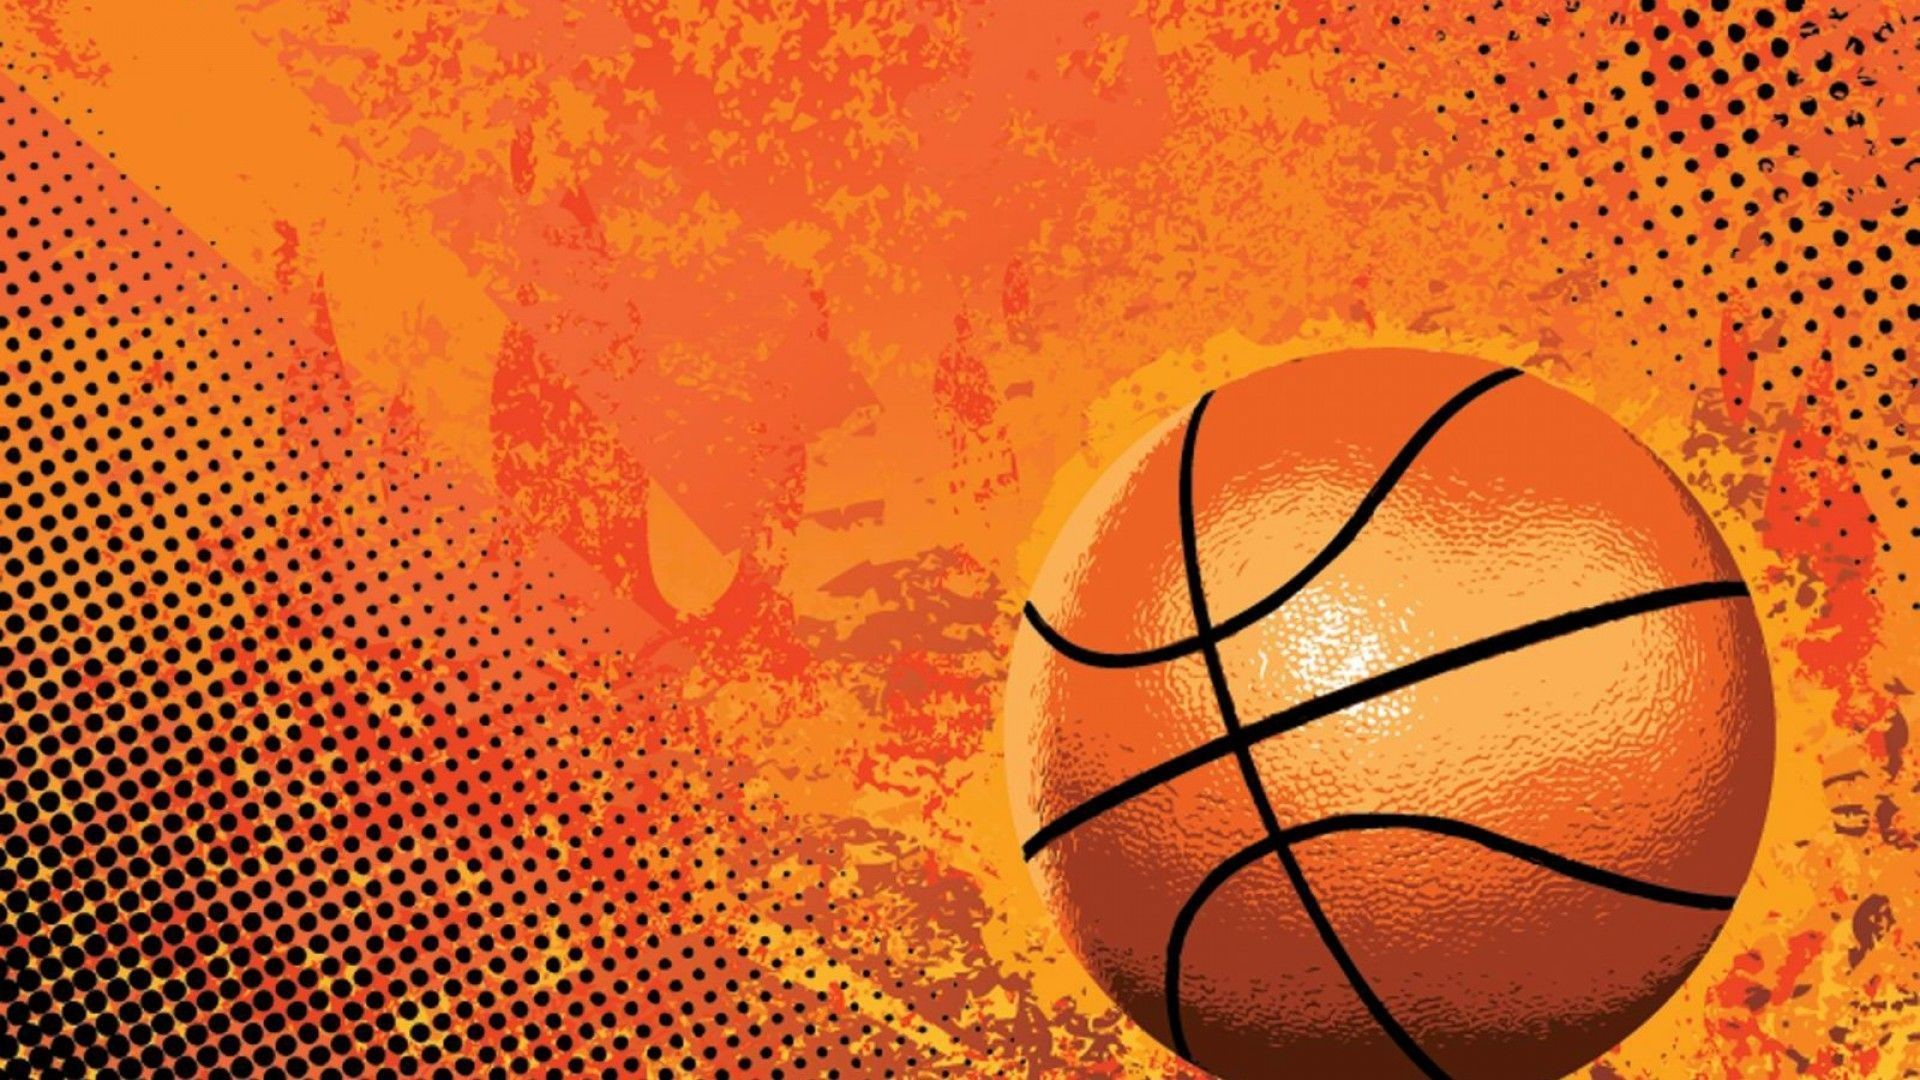 Cool Basketball Wallpaper Images (71+ Images